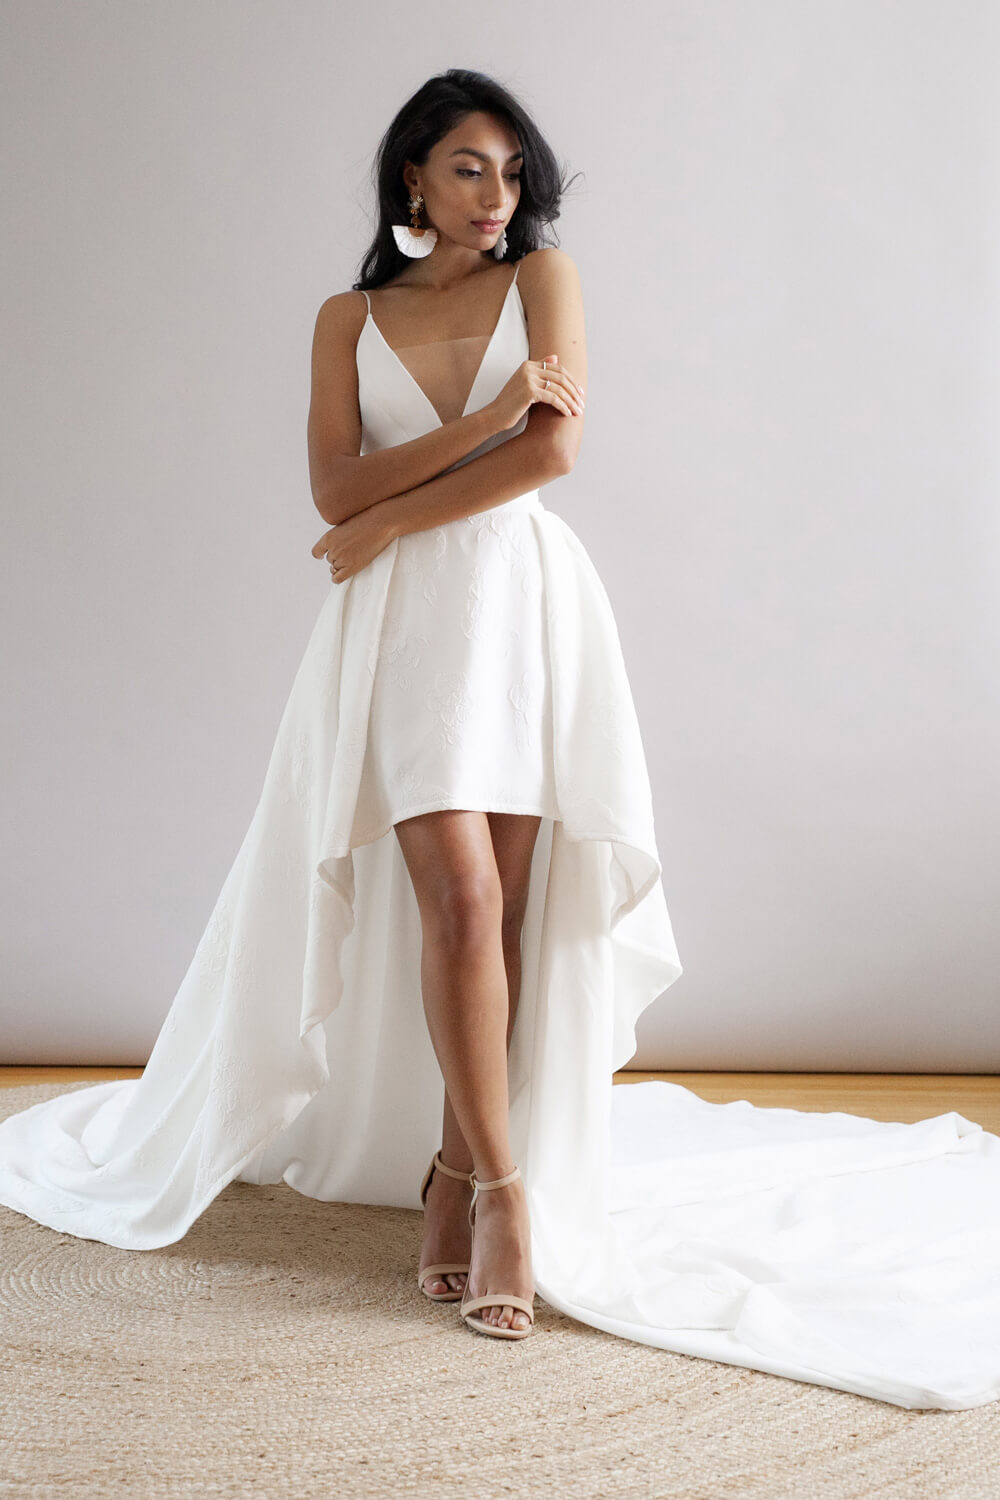 White dress with plunging v-neck, low back, spaghetti straps, and box-pleat hi-low skirt.